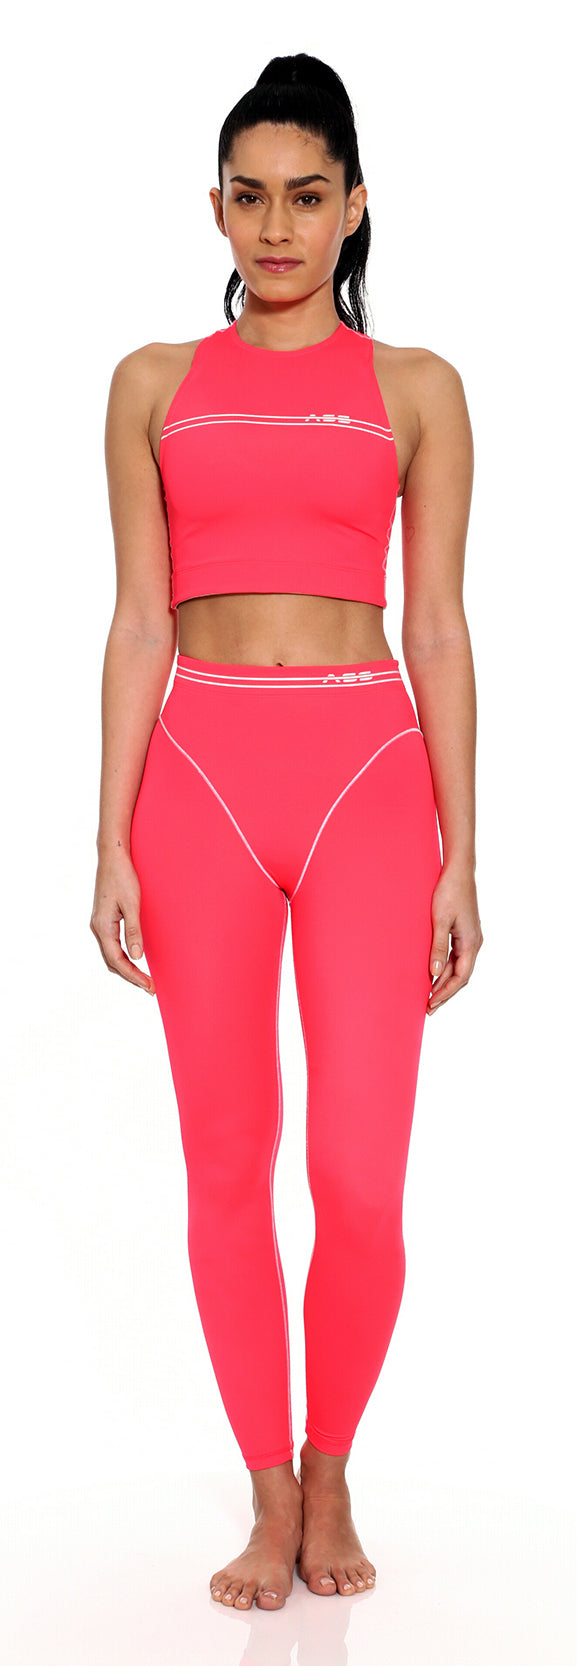 Racer Crop Top - Watermelon